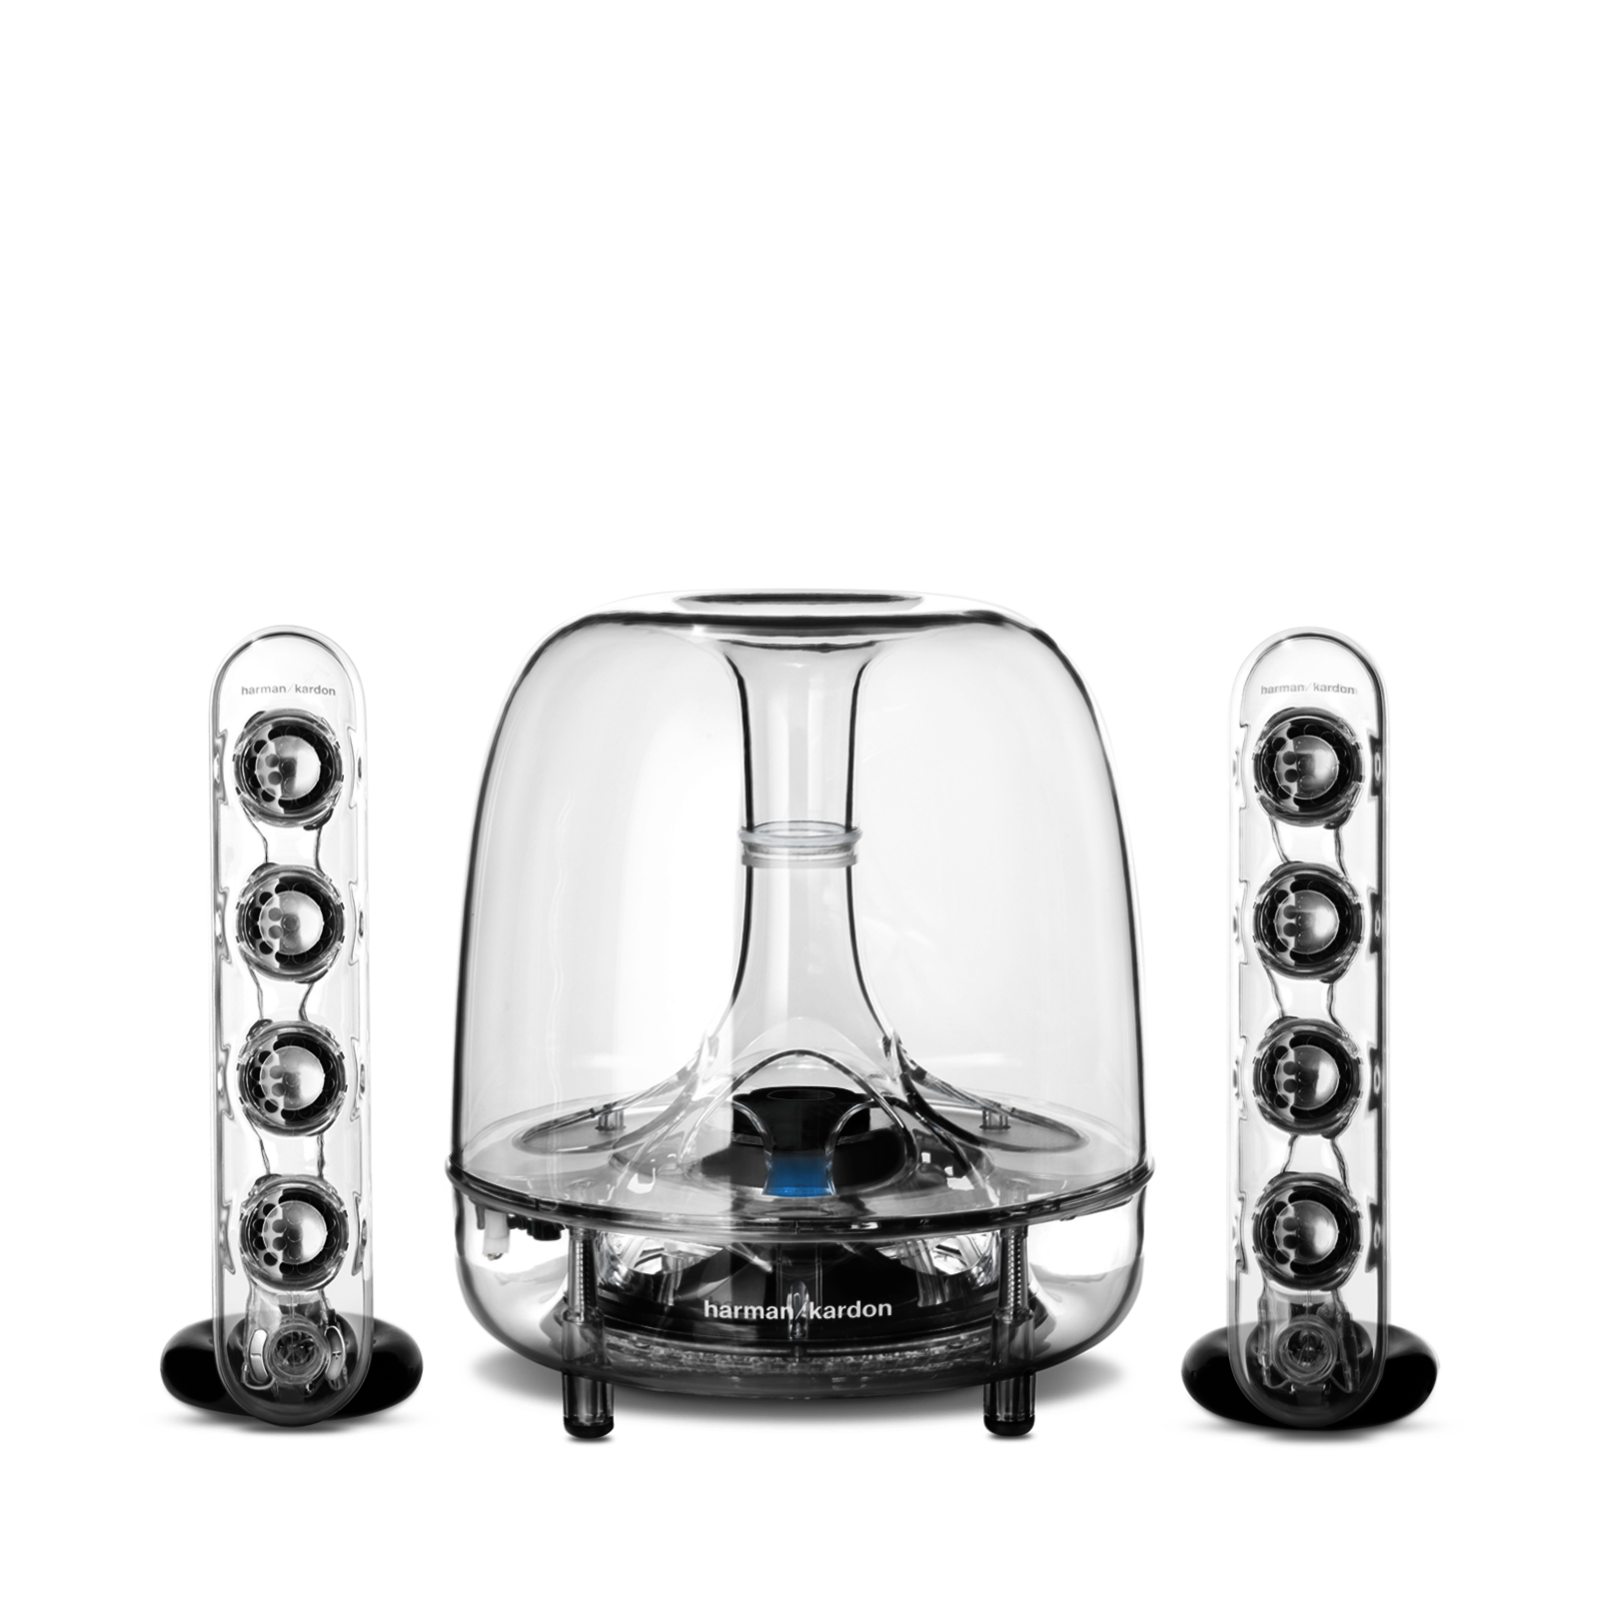 SoundSticks Wireless - Clear - Three-piece wireless speaker system with Bluetooth - Hero